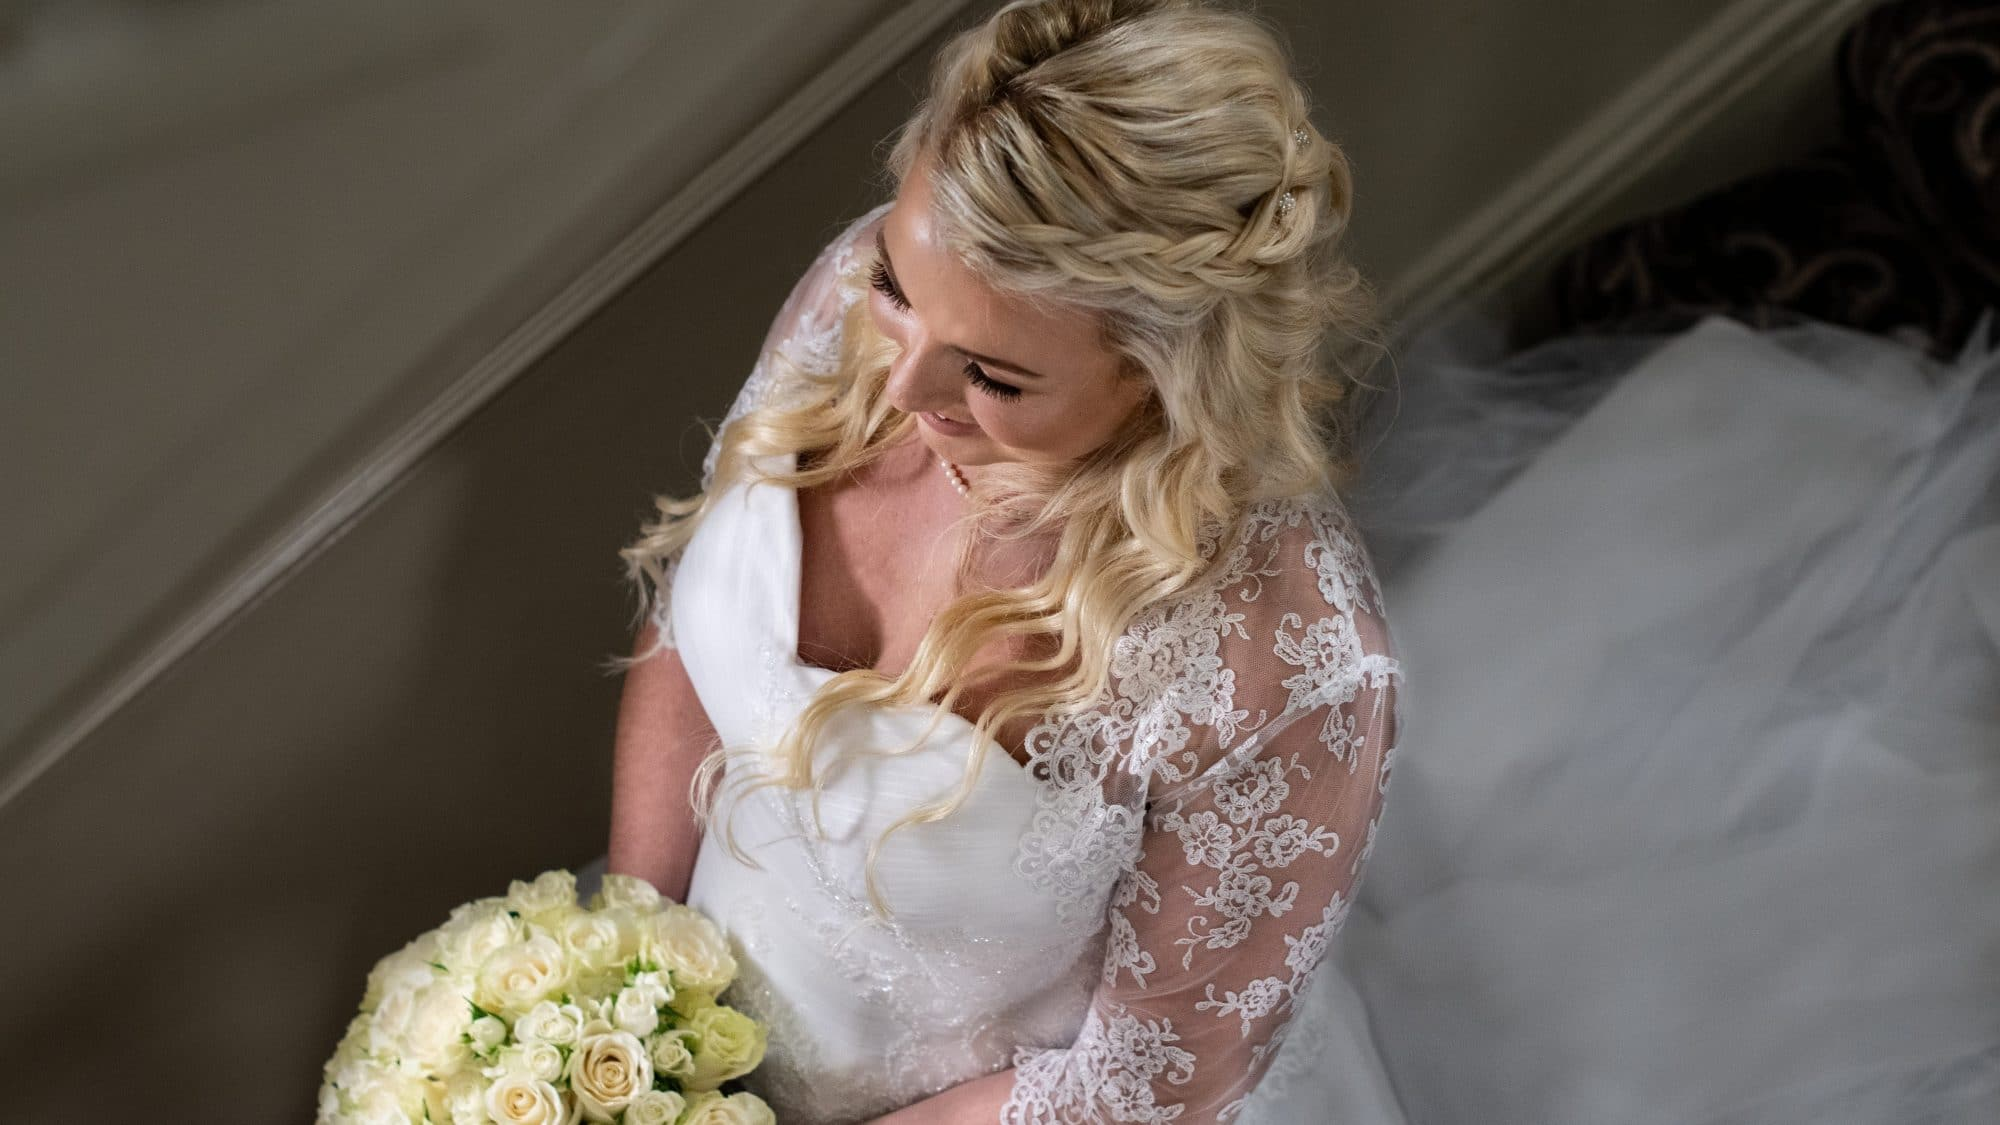 About Flashback Photography - Bride shot from above with bouquet